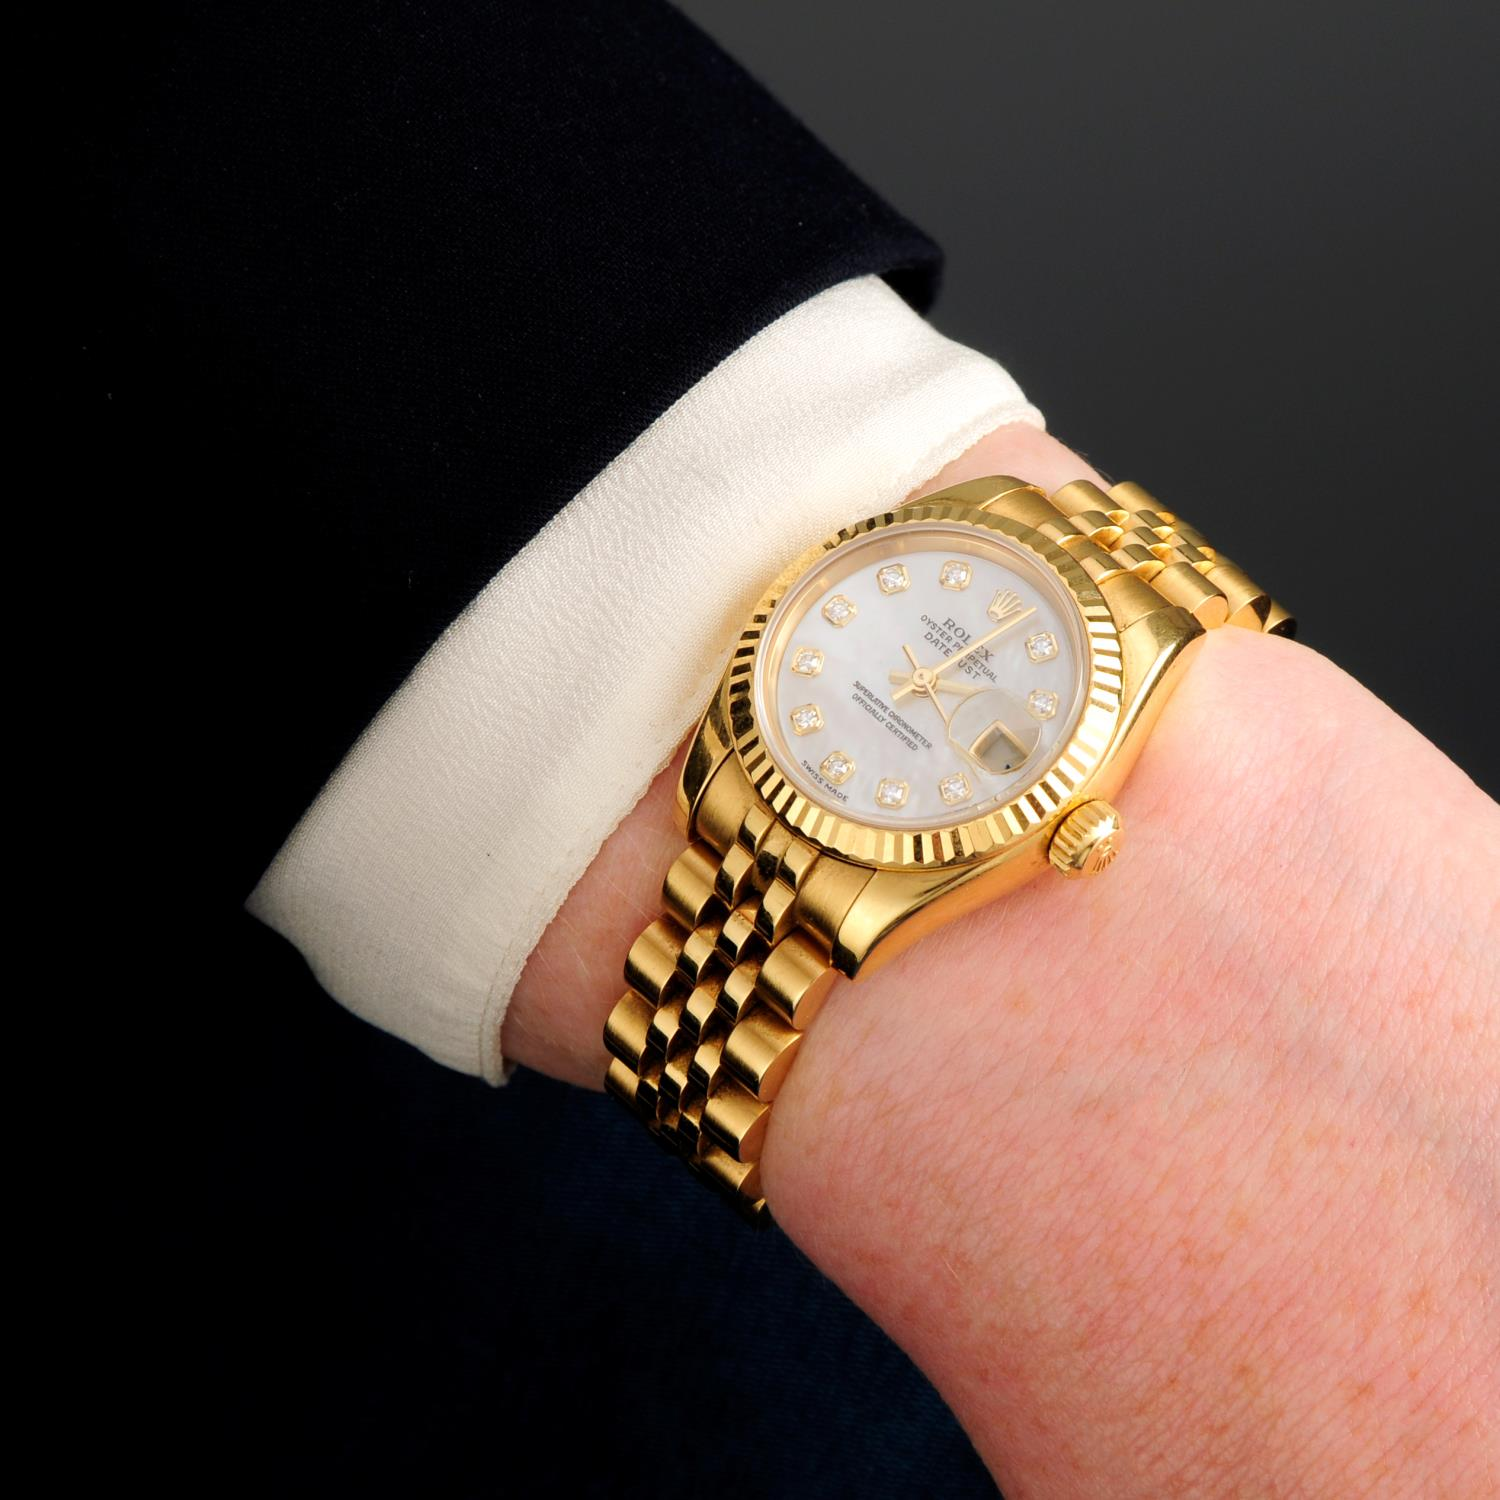 ROLEX - an Oyster Perpetual Datejust bracelet watch. - Image 3 of 6